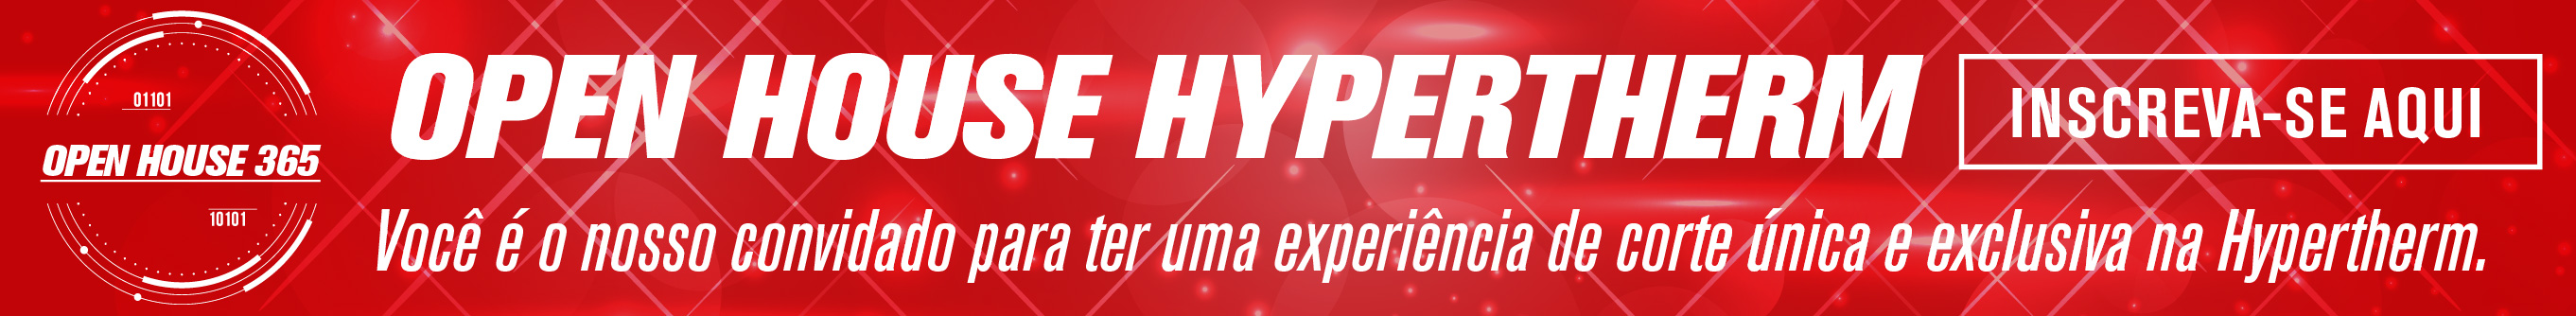 Banner Hypertherm open house